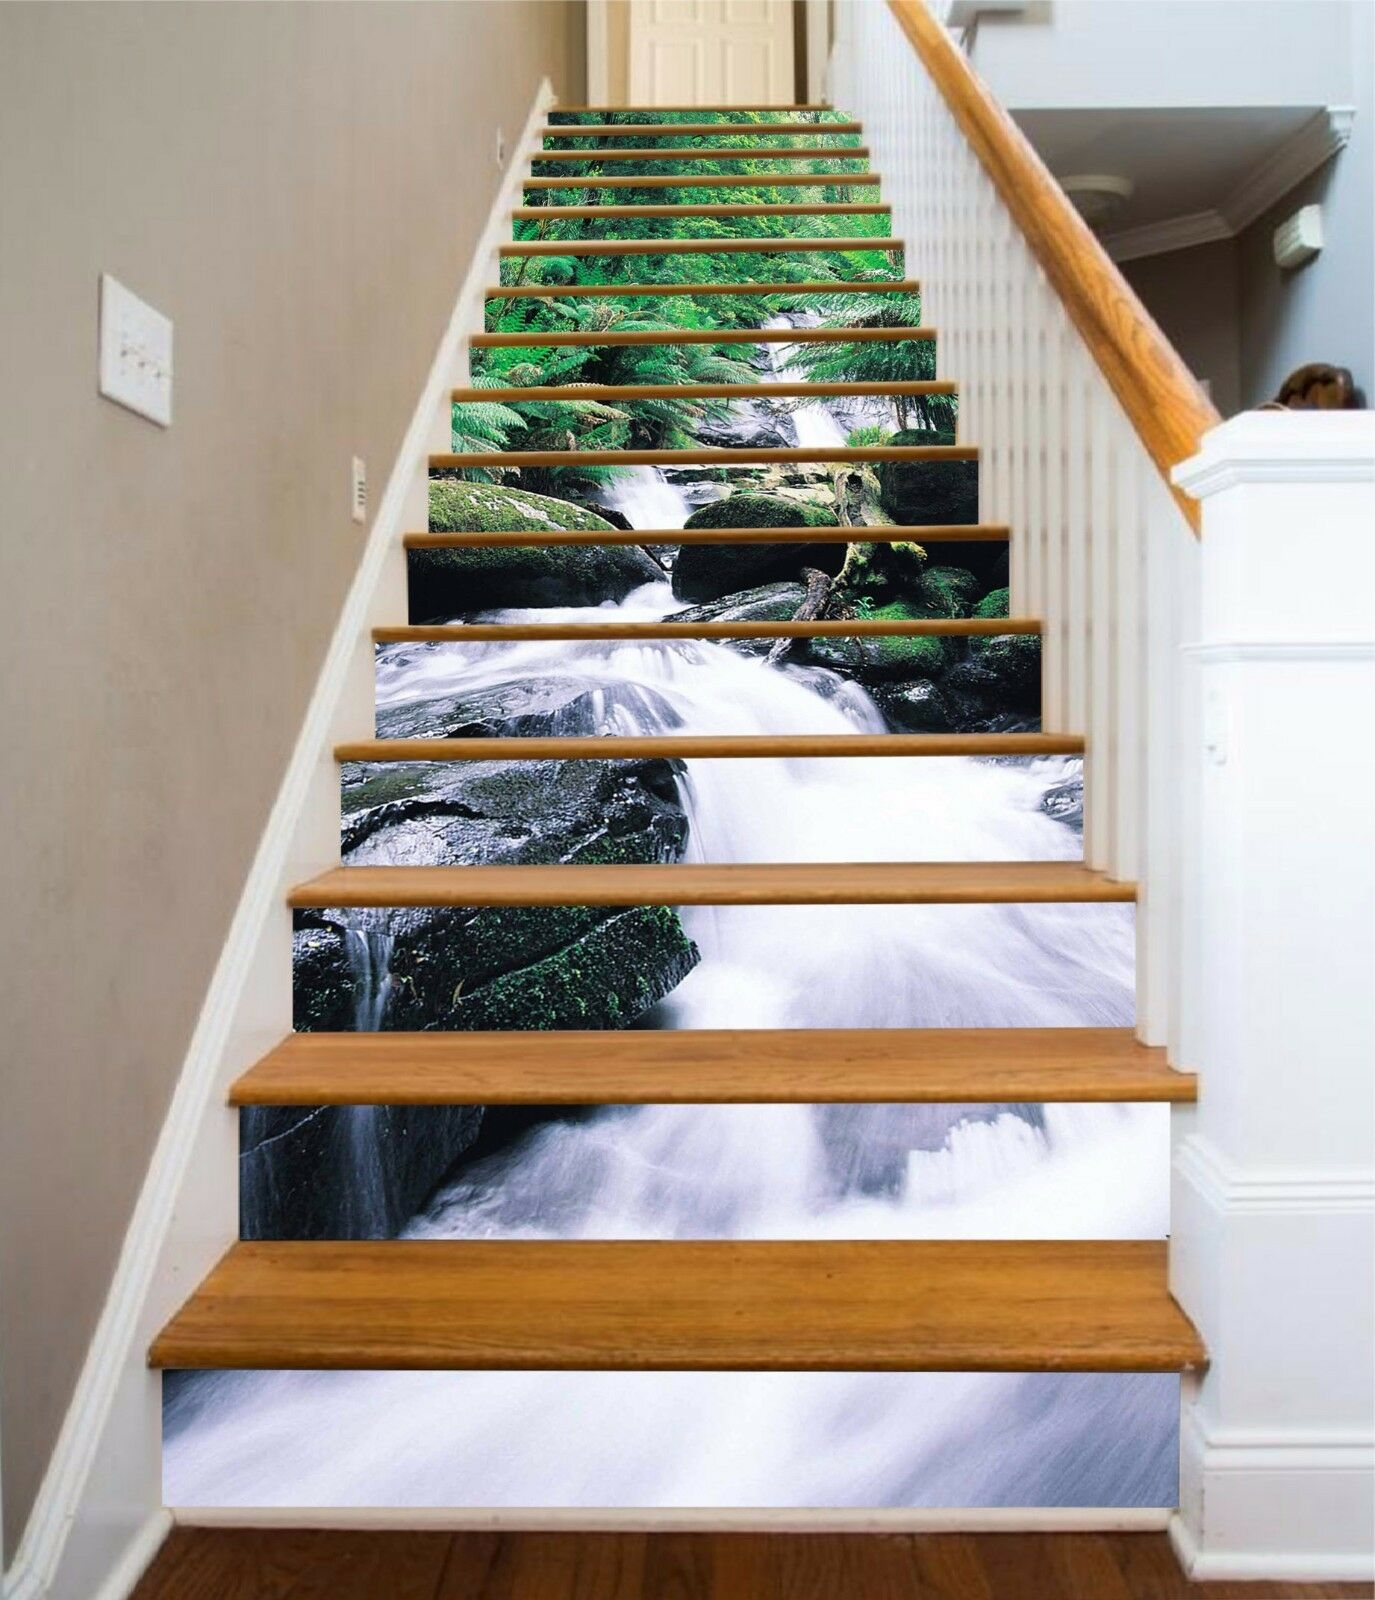 3D Tree water 535 Stair Risers Decoration Photo Mural Vinyl Decal Wallpaper UK